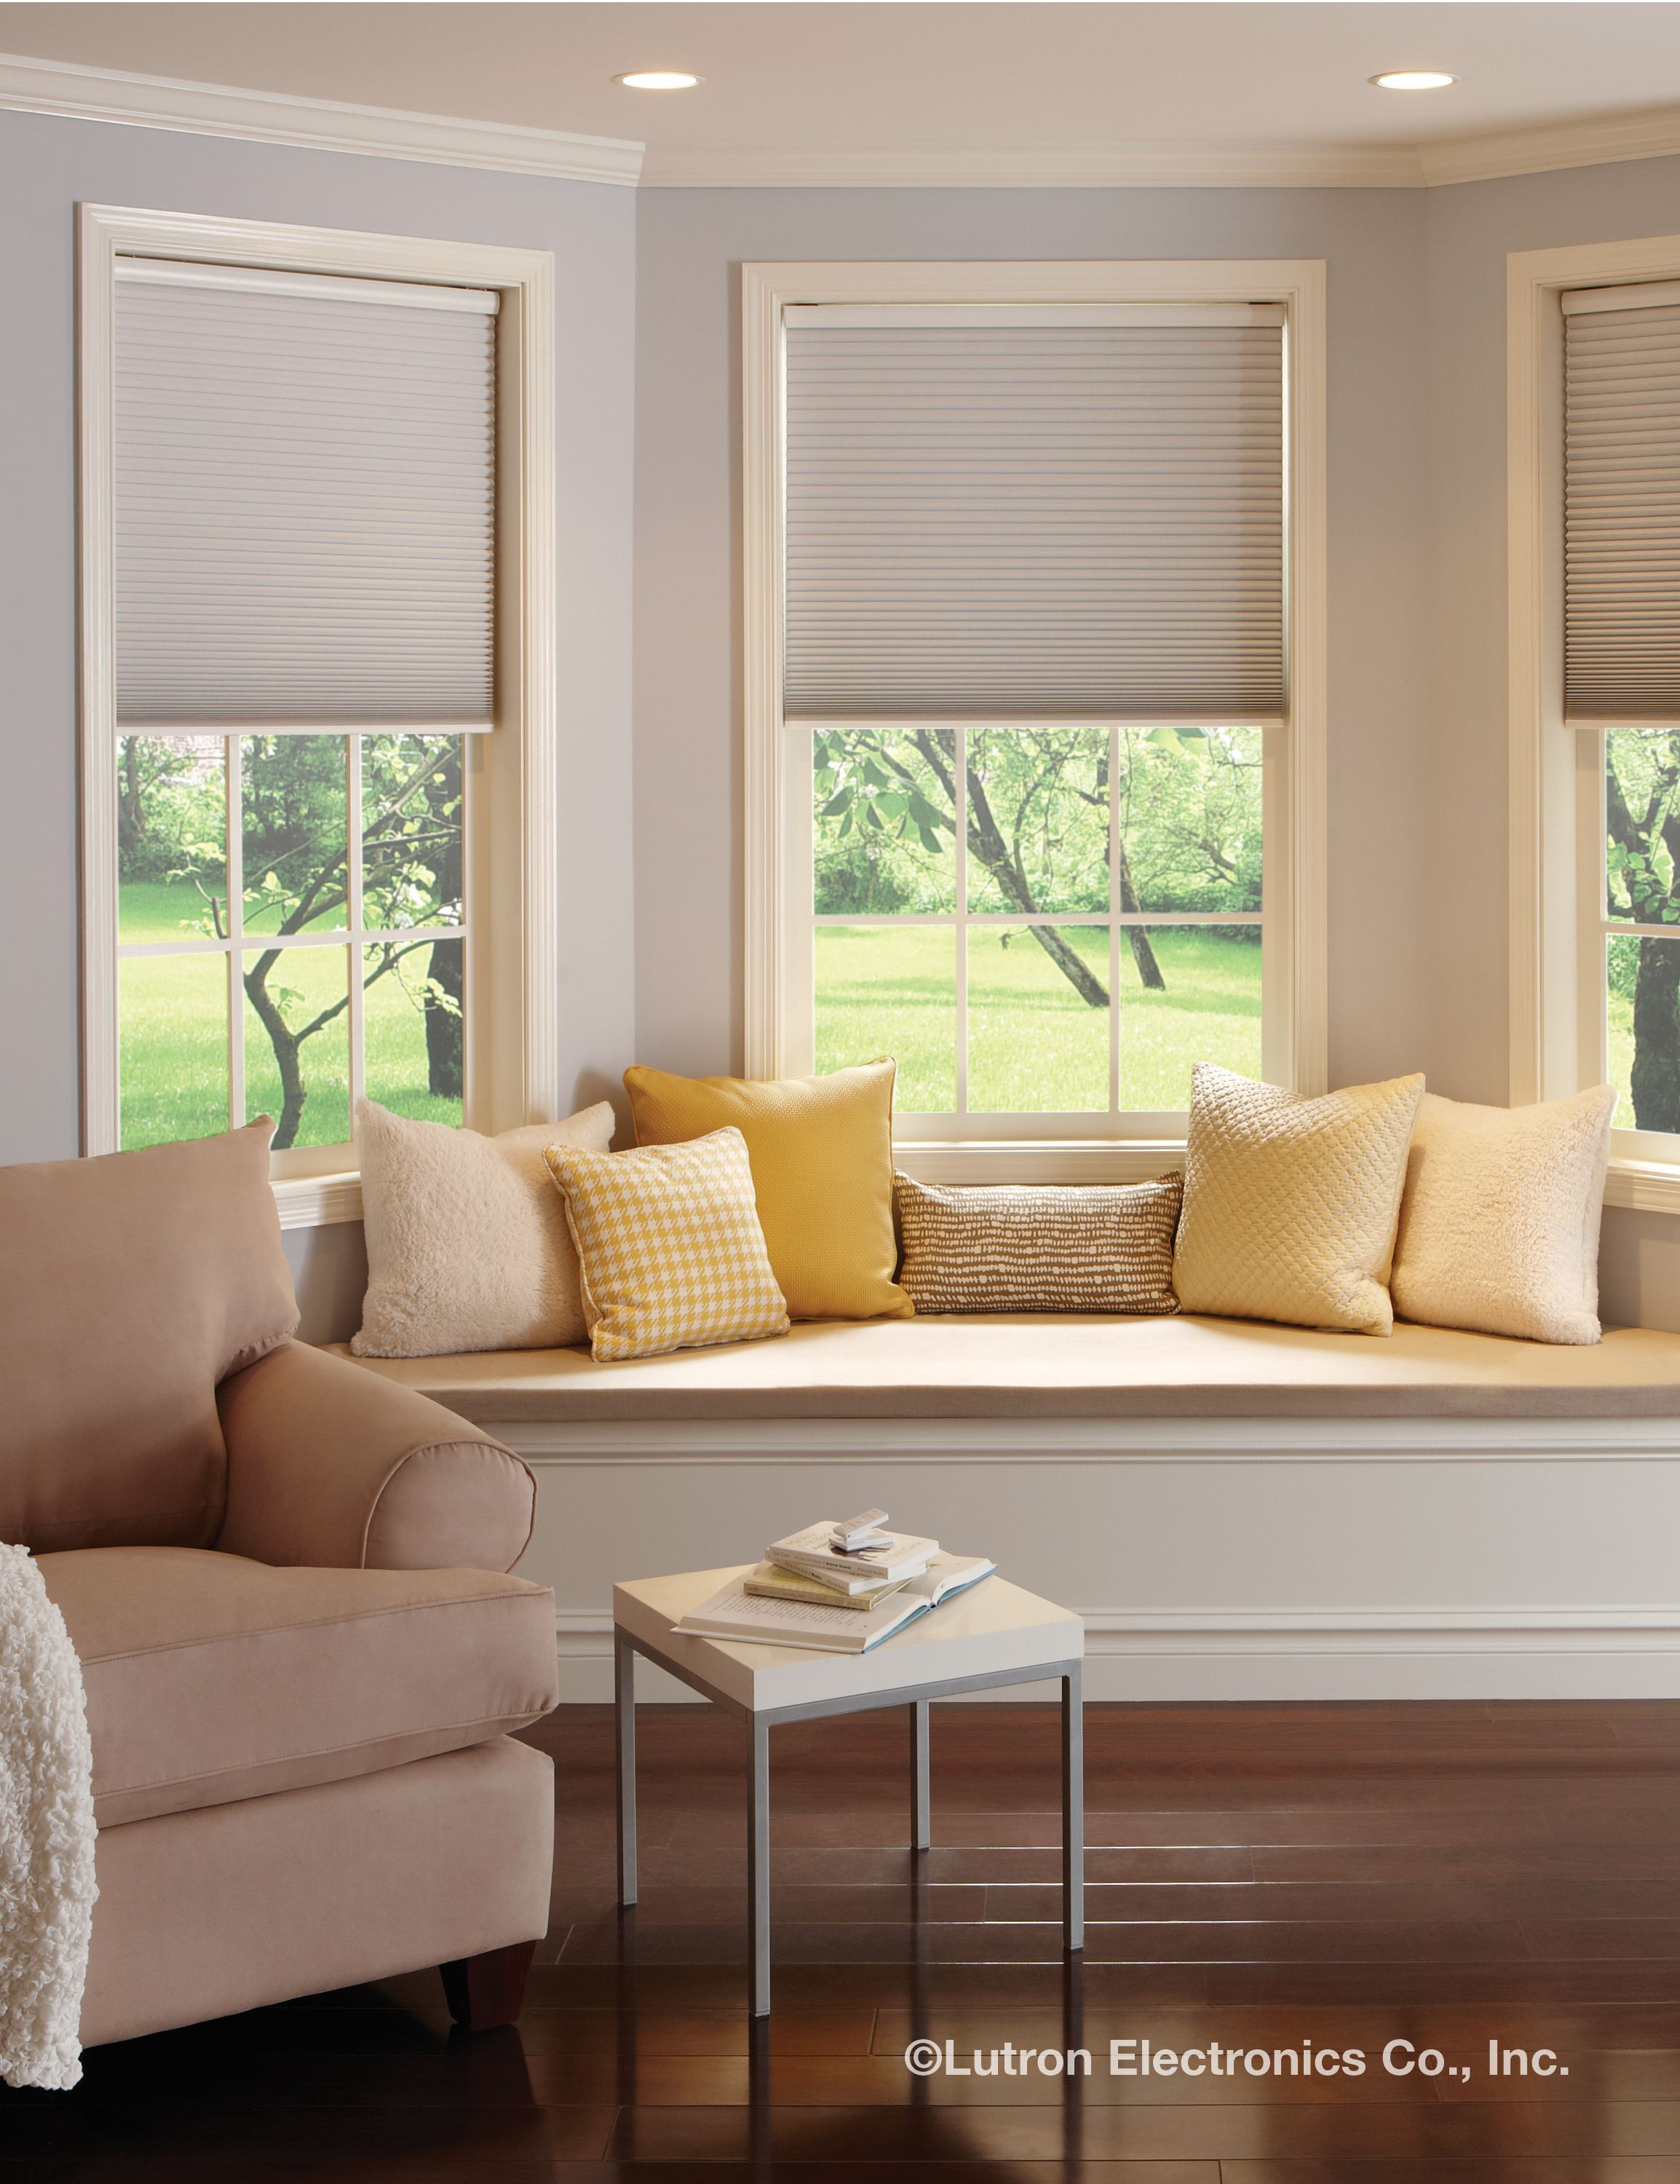 inspirations blind motorized mice window coverings controlled and top remote shades other blinds